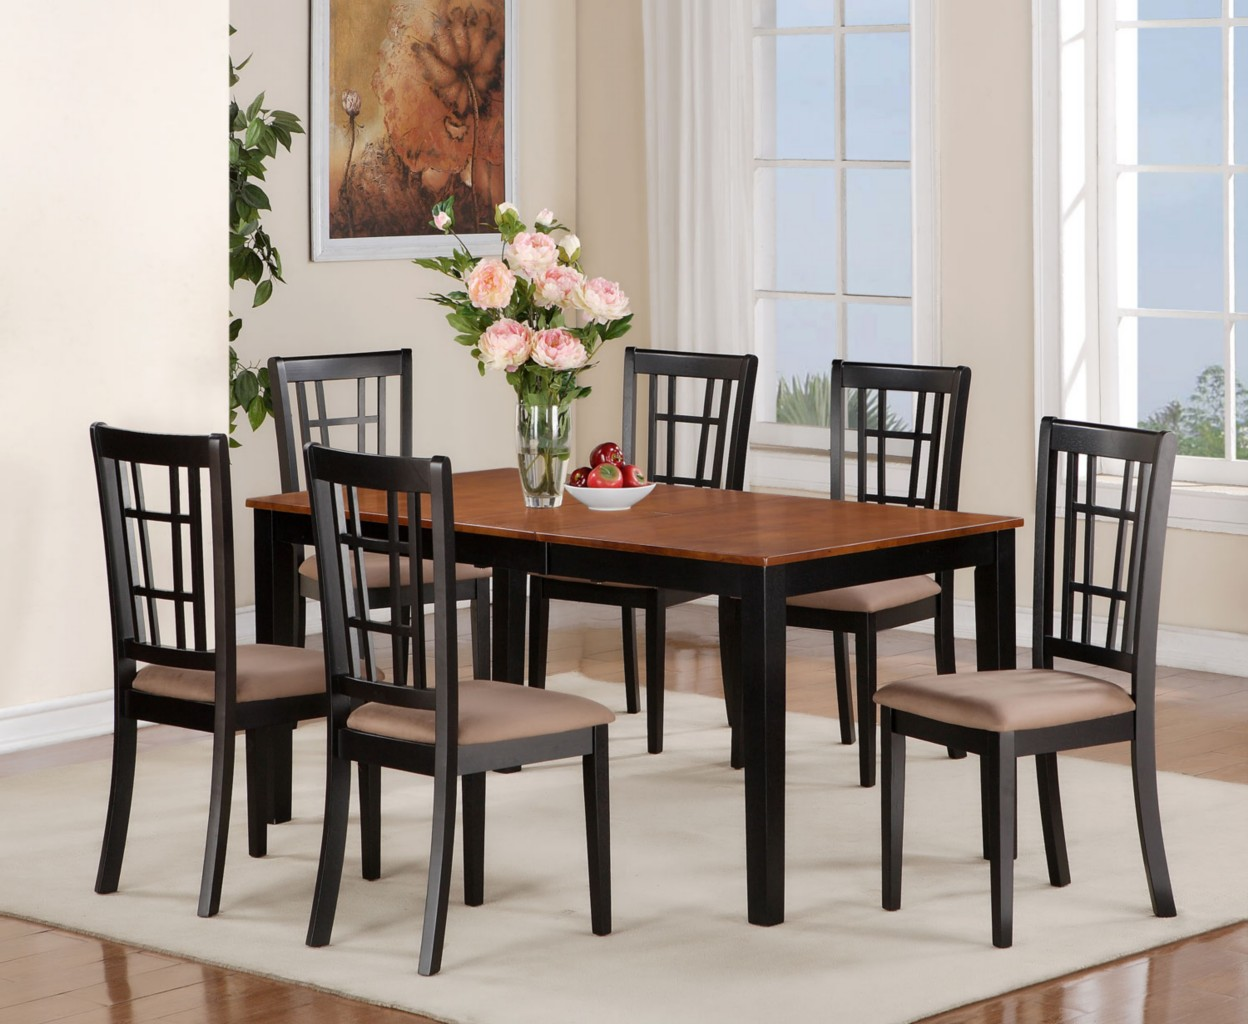 5pc dinette kitchen dining set rectangular table 4 for Kitchen dinette sets